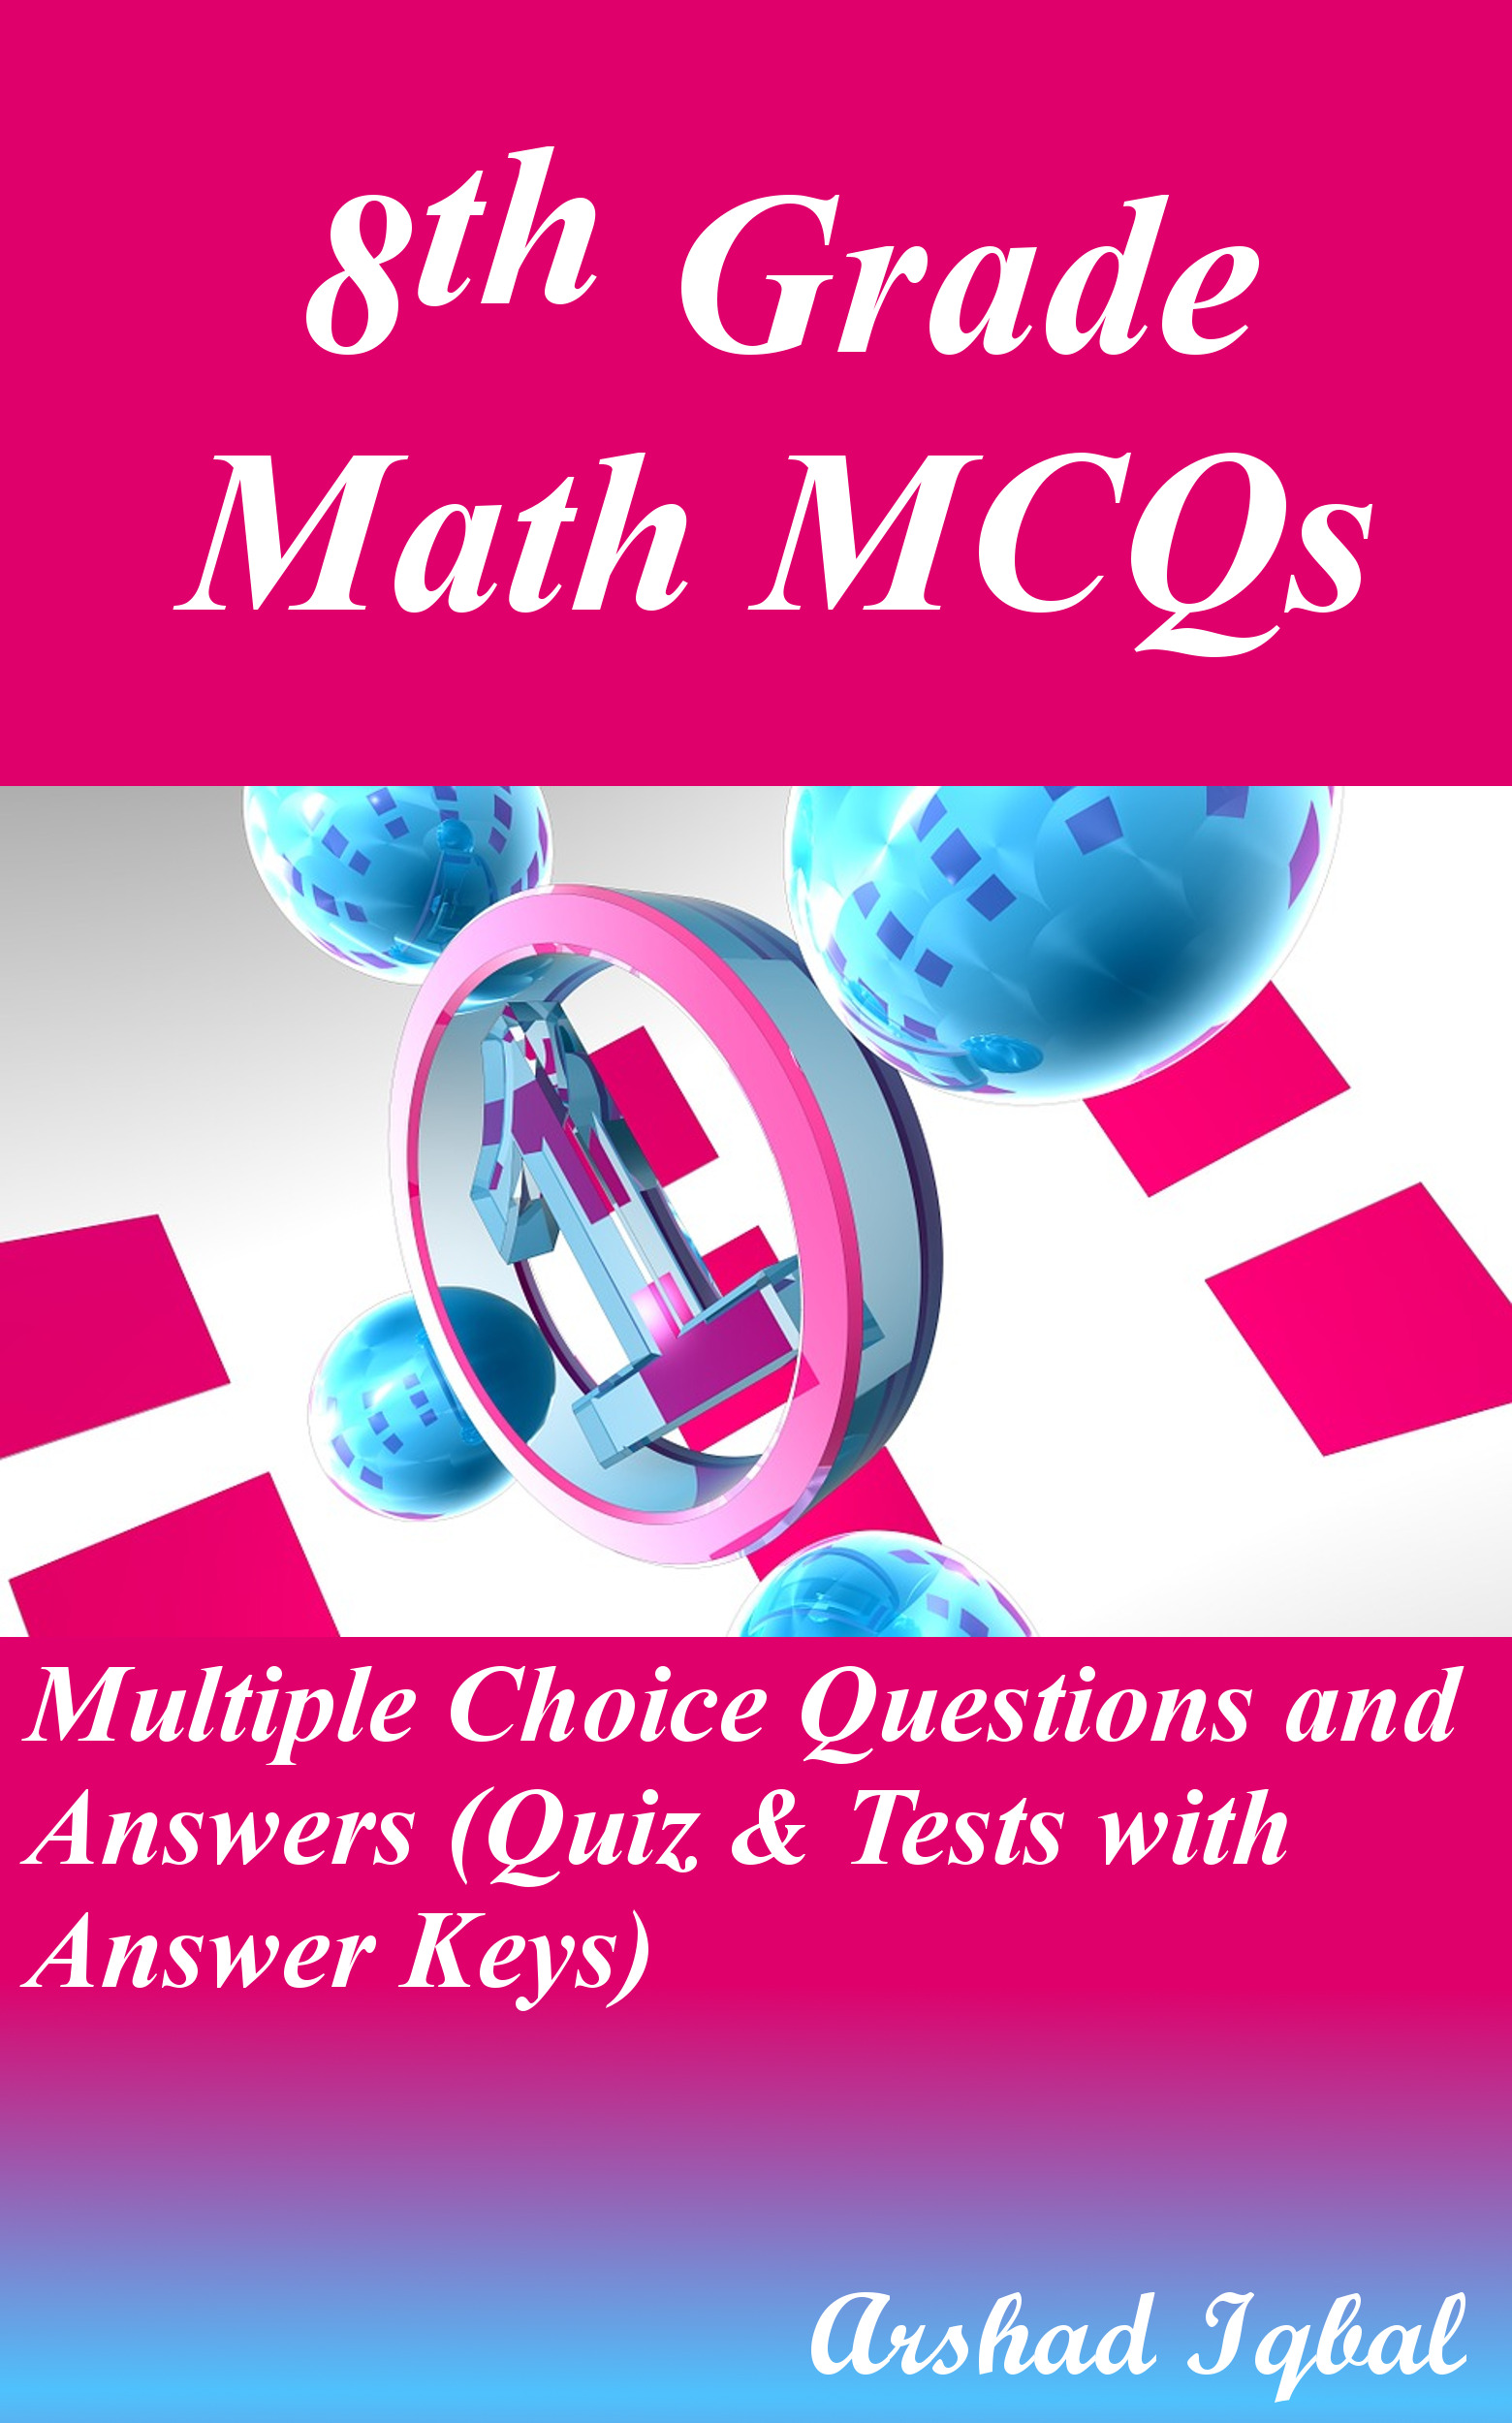 Grade 8 Math MCQs: Multiple Choice Questions and Answers (Quiz & Tests with Answer Keys)